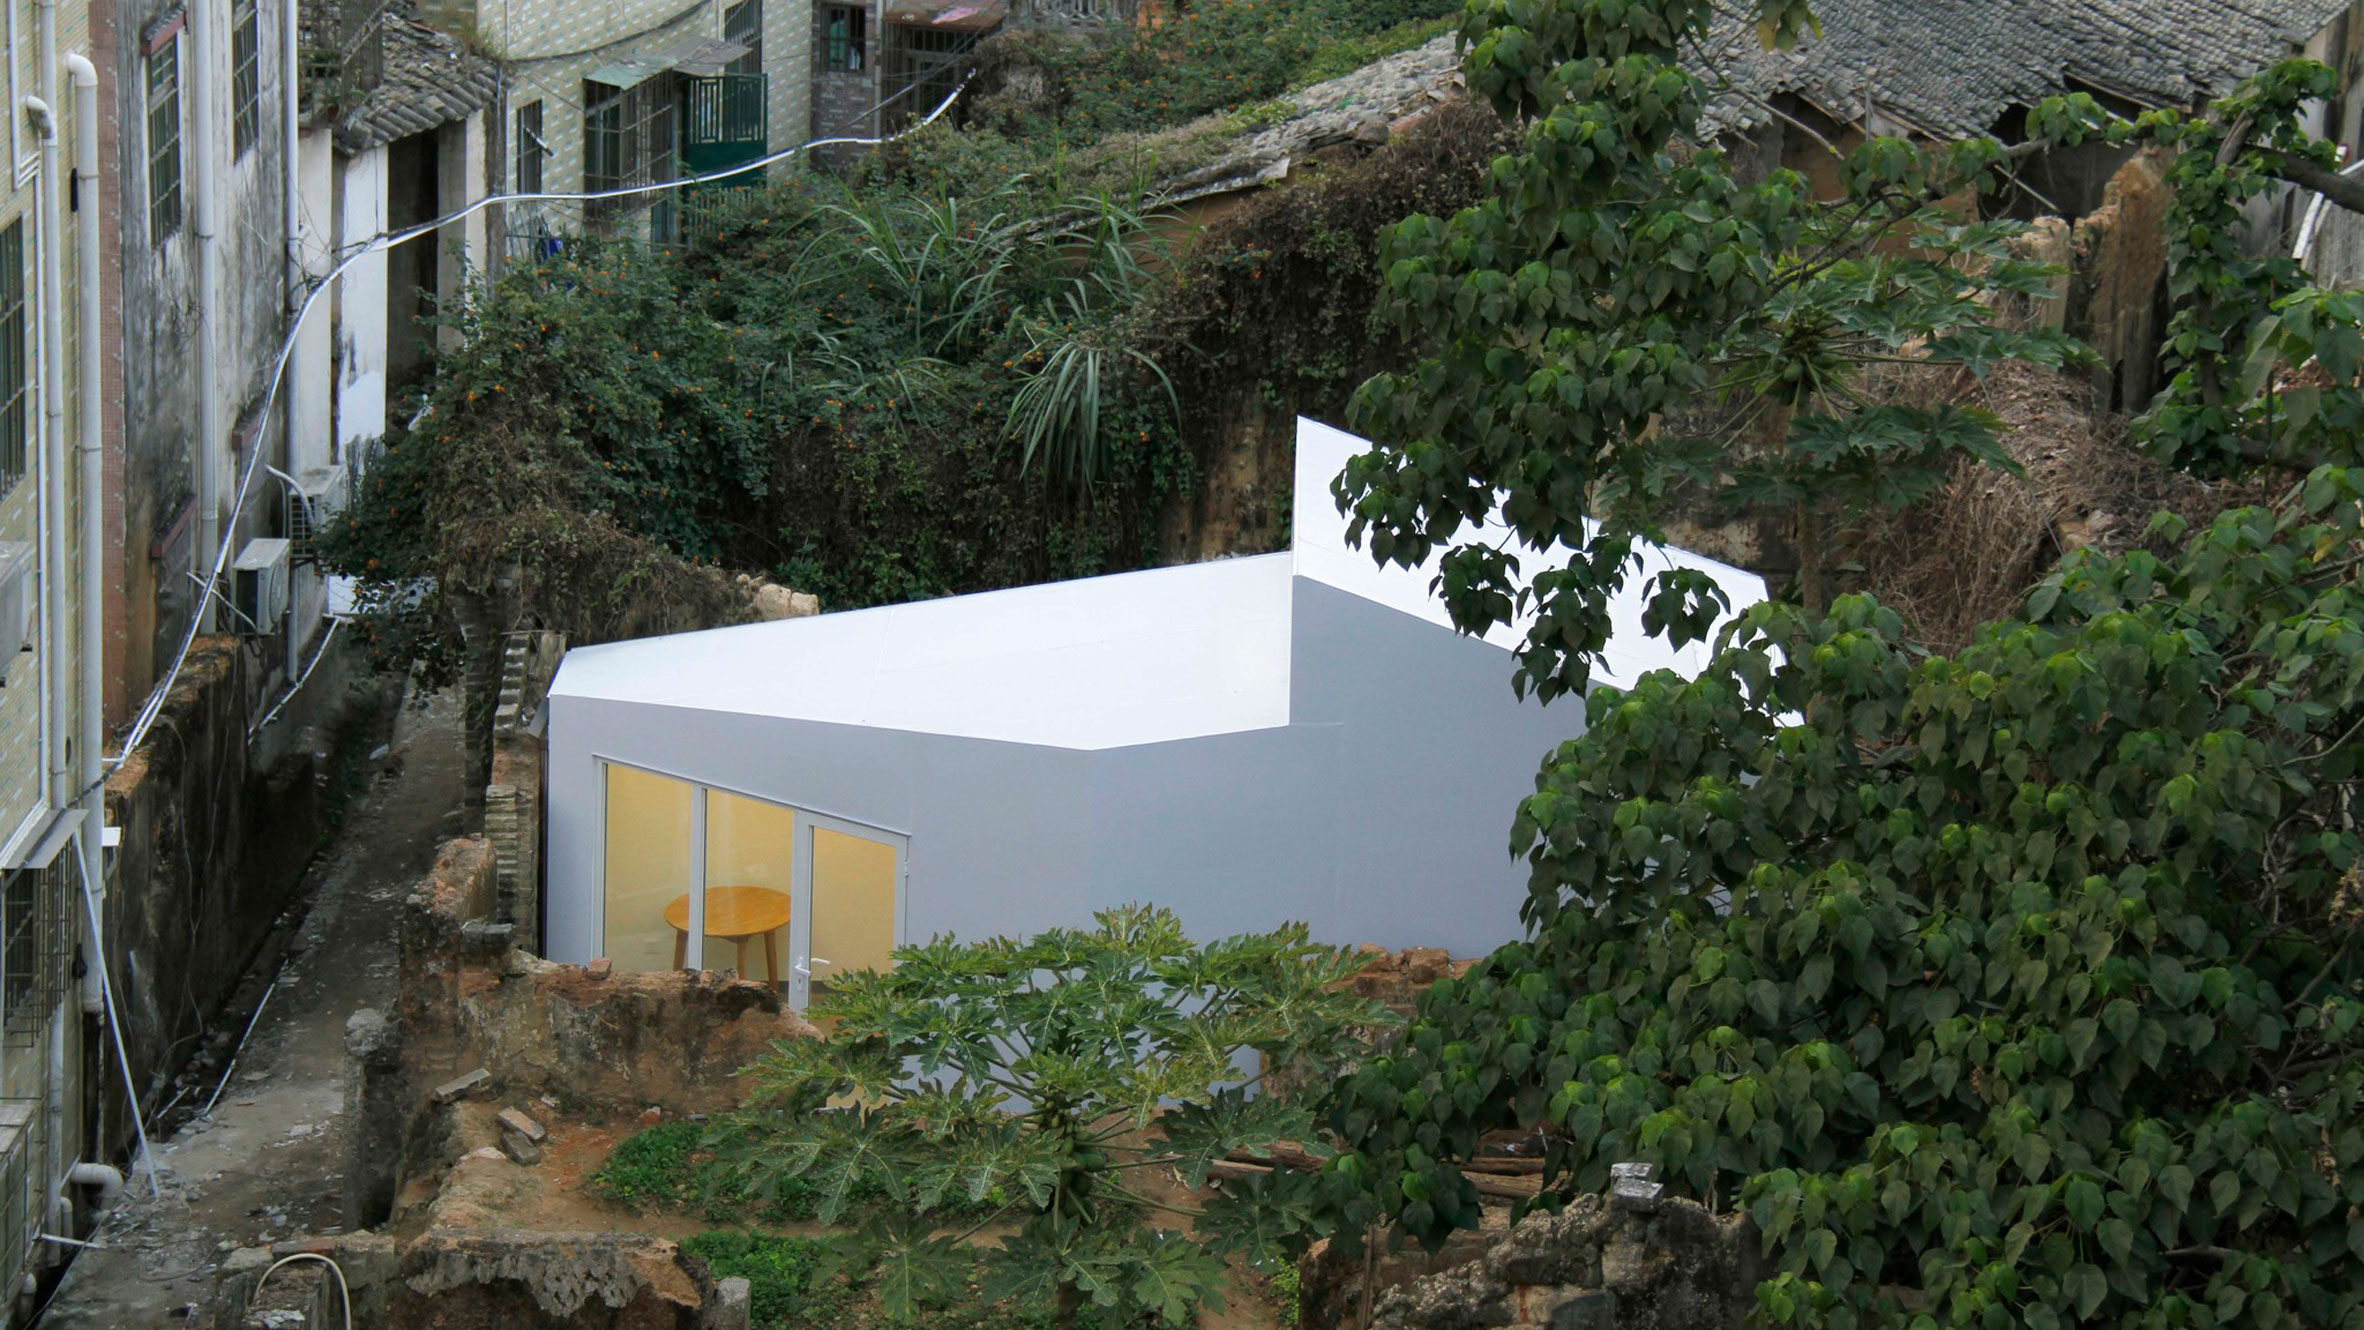 Shangwei Village Plugin Houses, Shenzhen, China, by People's Architecture Office